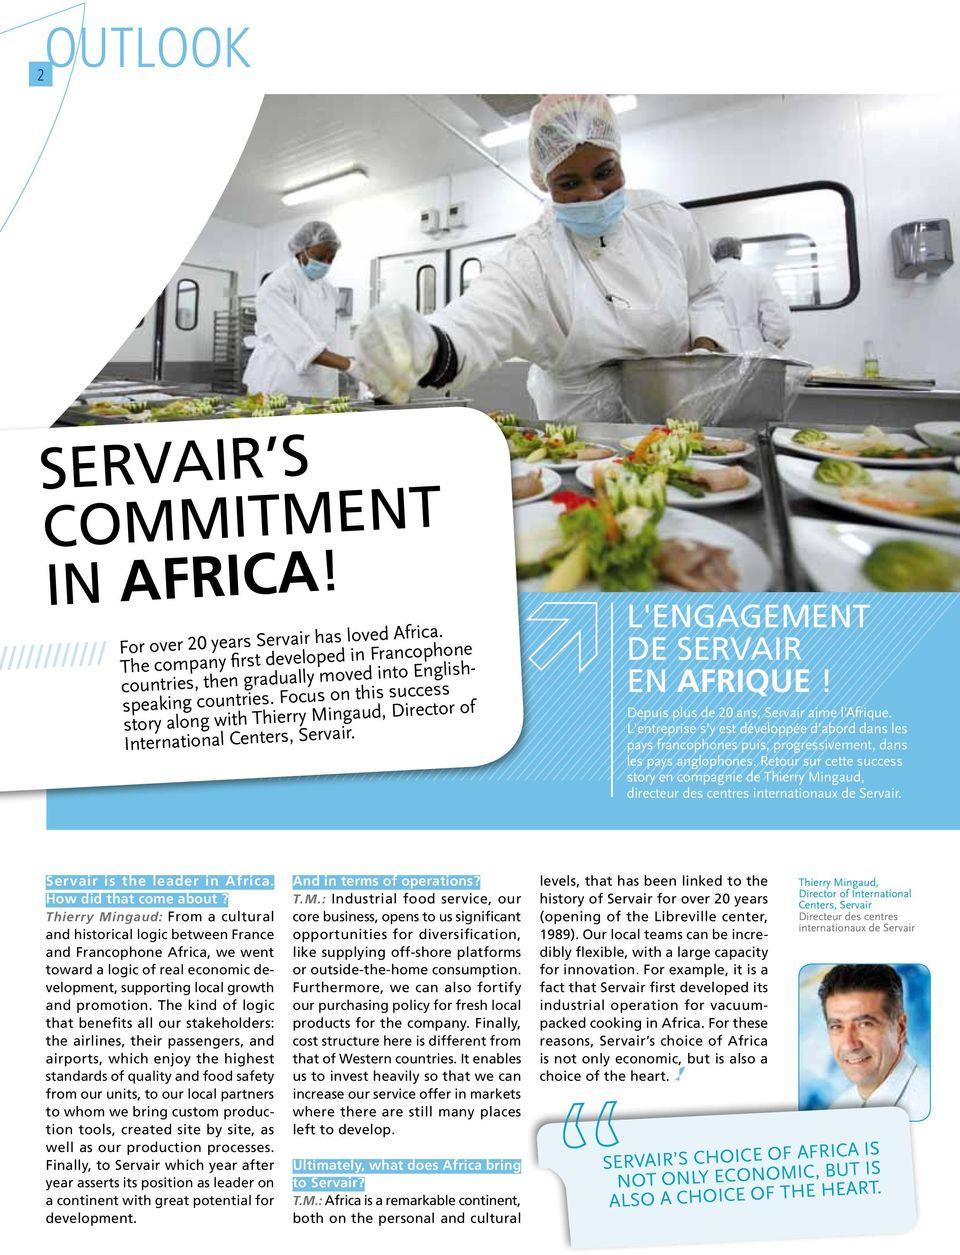 Focus on this success story along with Thierry Mingaud, Director of International Centers, Servair. L'engagement de servair en Afrique! Depuis plus de 20 ans, Servair aime l Afrique.